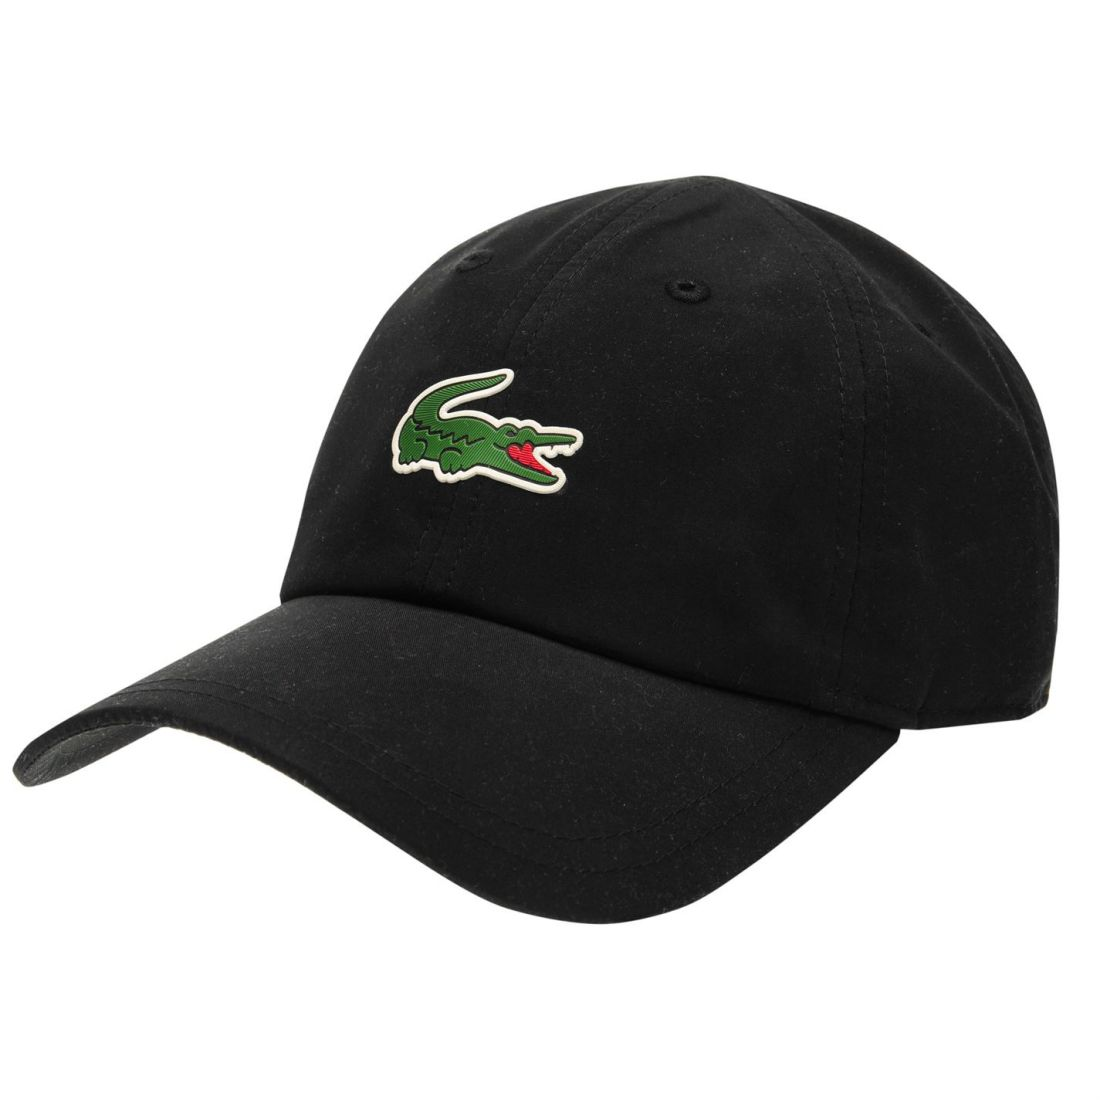 4233b56d13 Image is loading Mens-Lacoste-Side-Logo-Cap-Baseball-Tonal-Stitching-